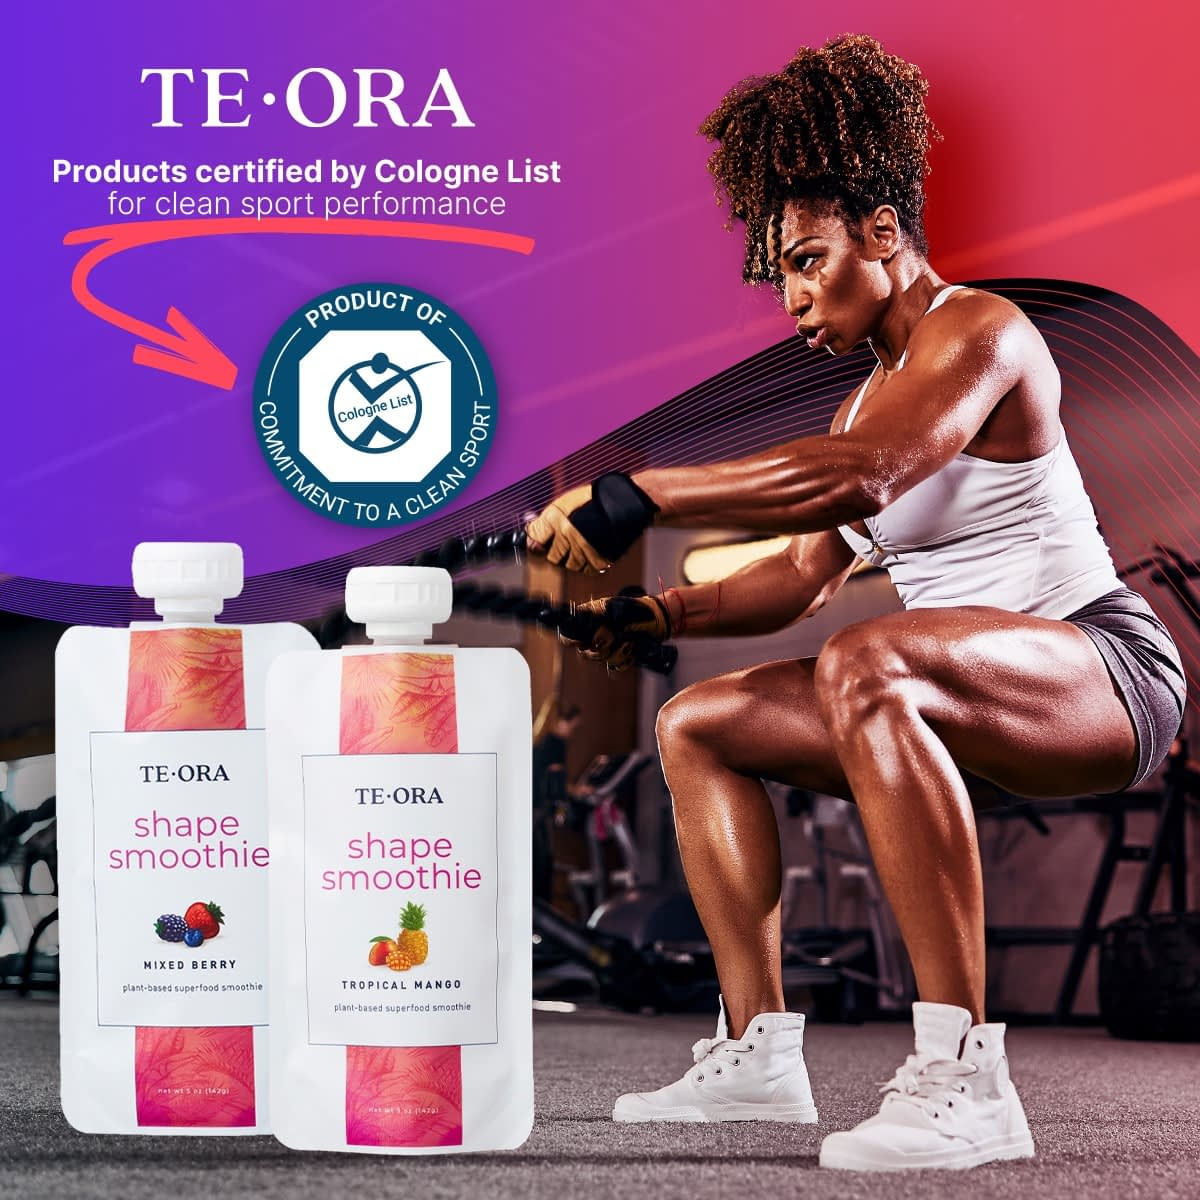 Te-Ora Products Certified by Cologne List